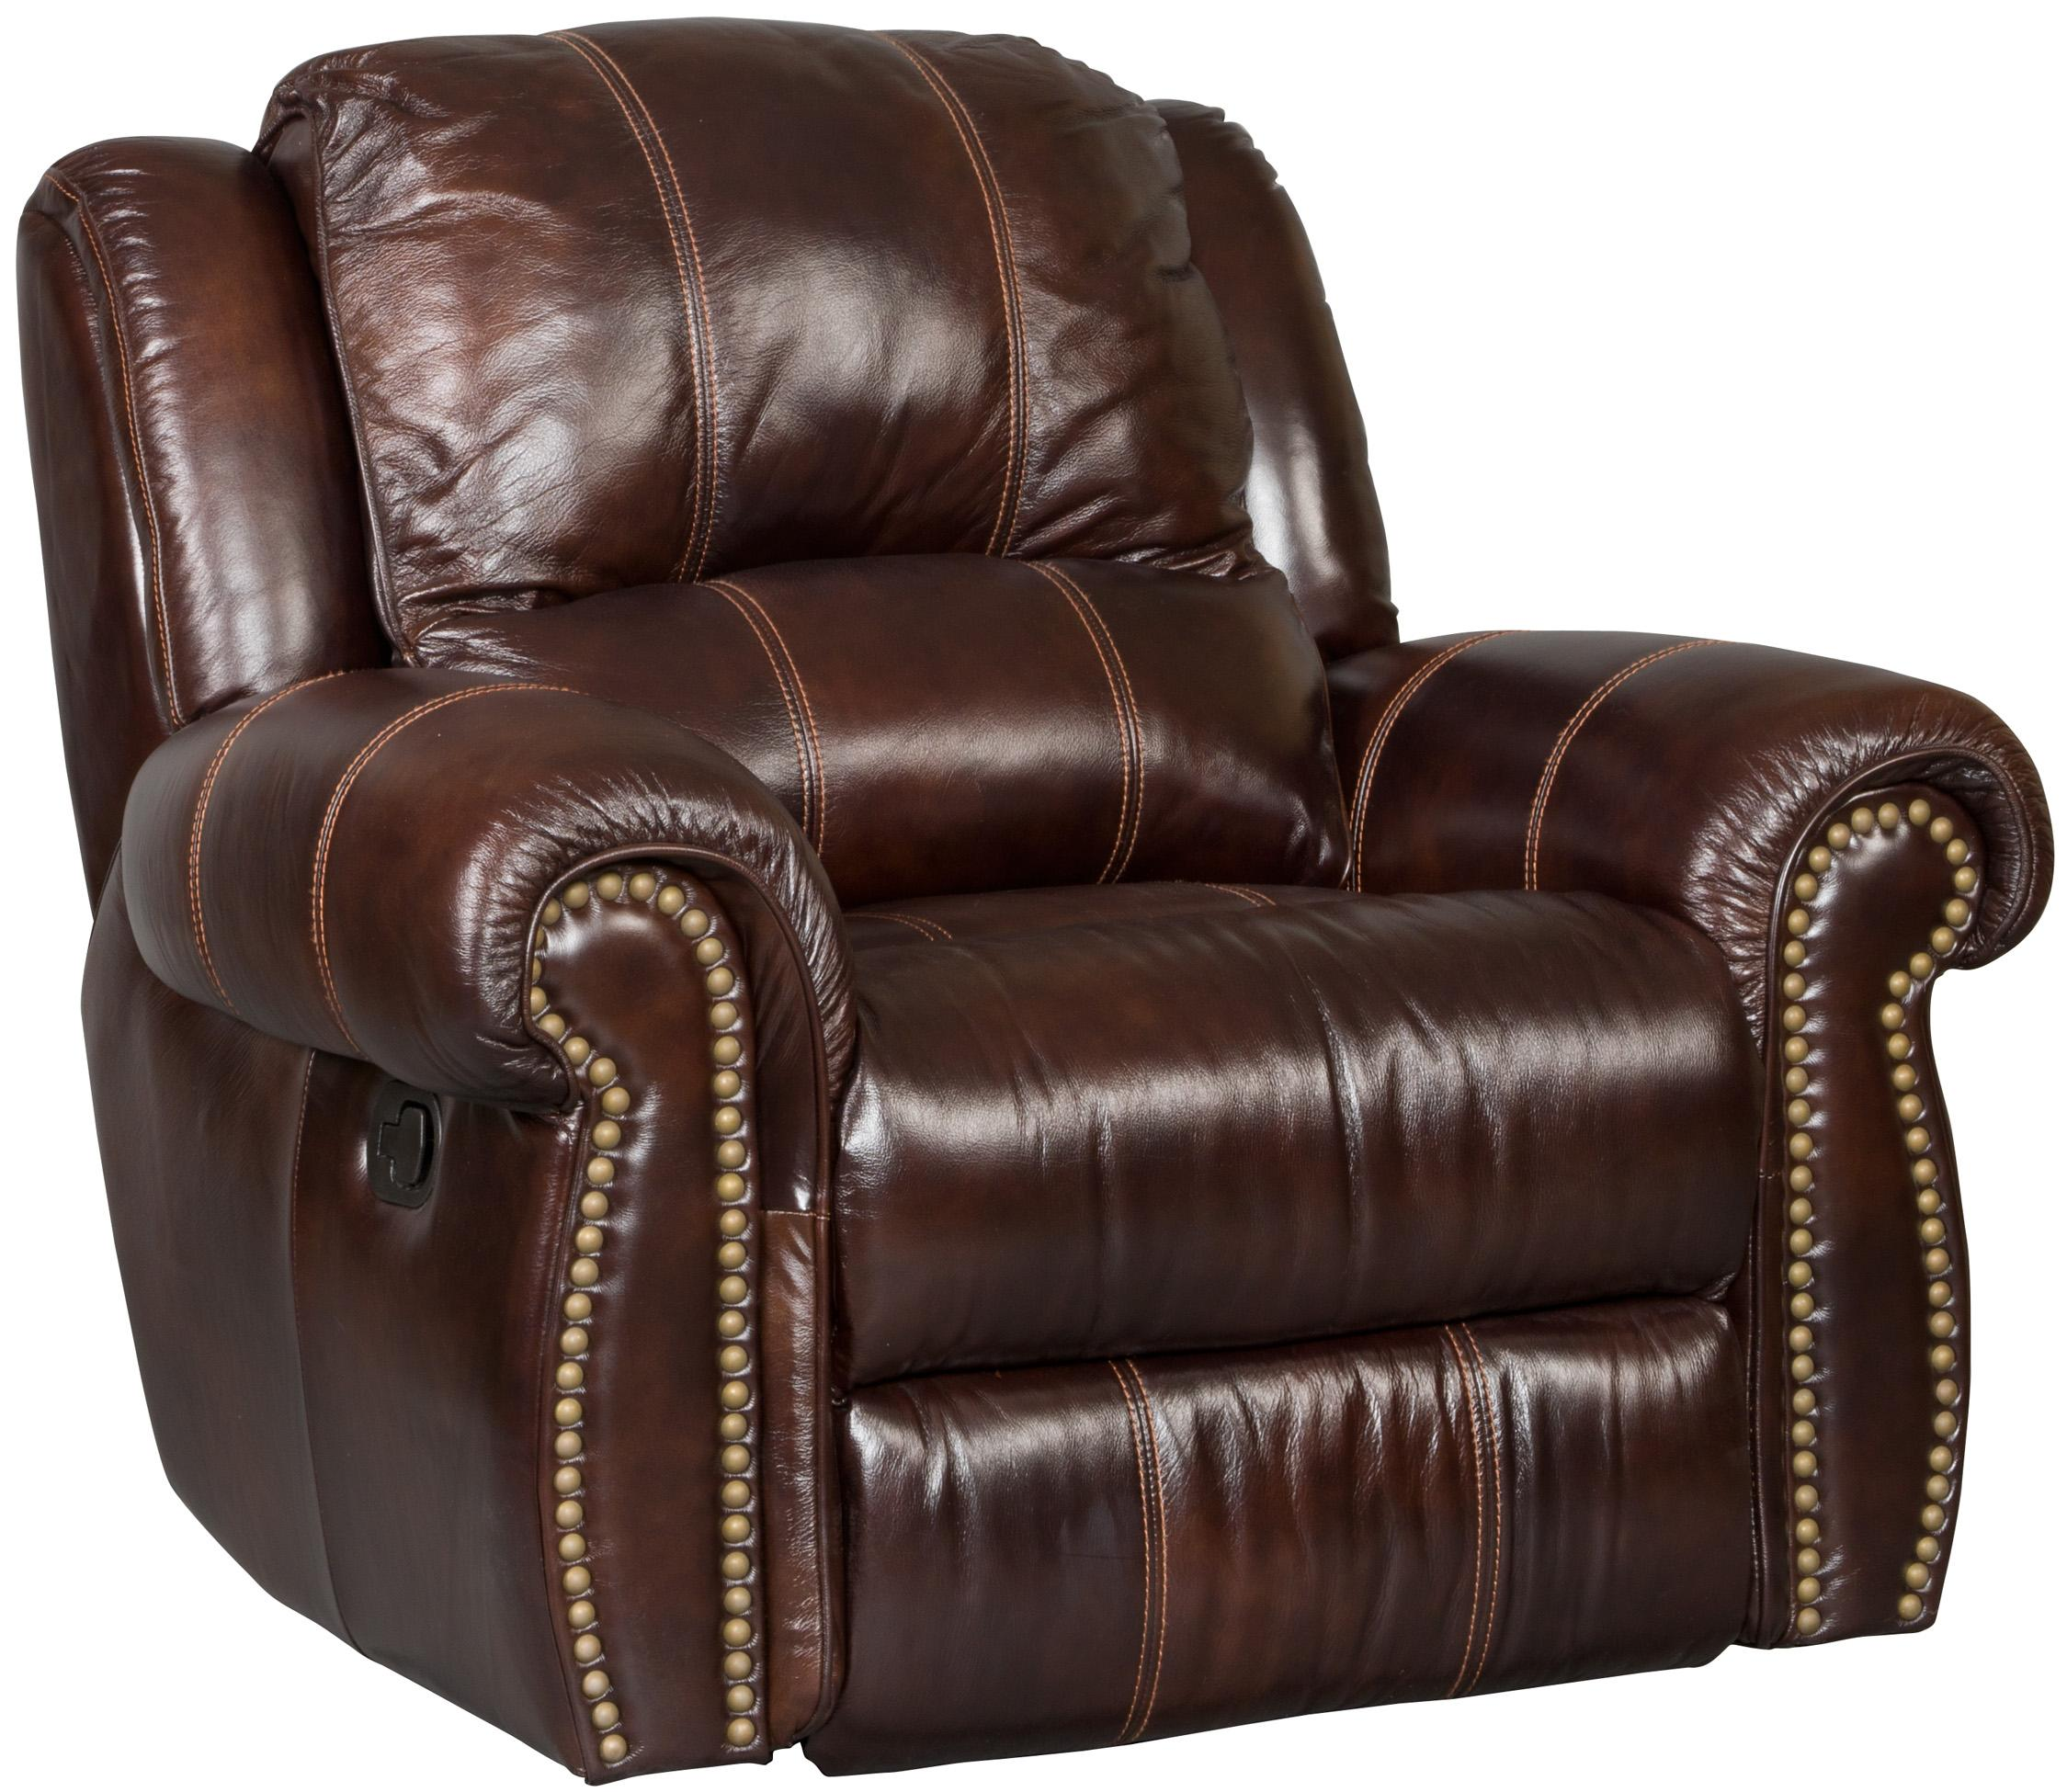 Hooker Furniture SS611 Power Recliner - Item Number: SS611-PWR-068